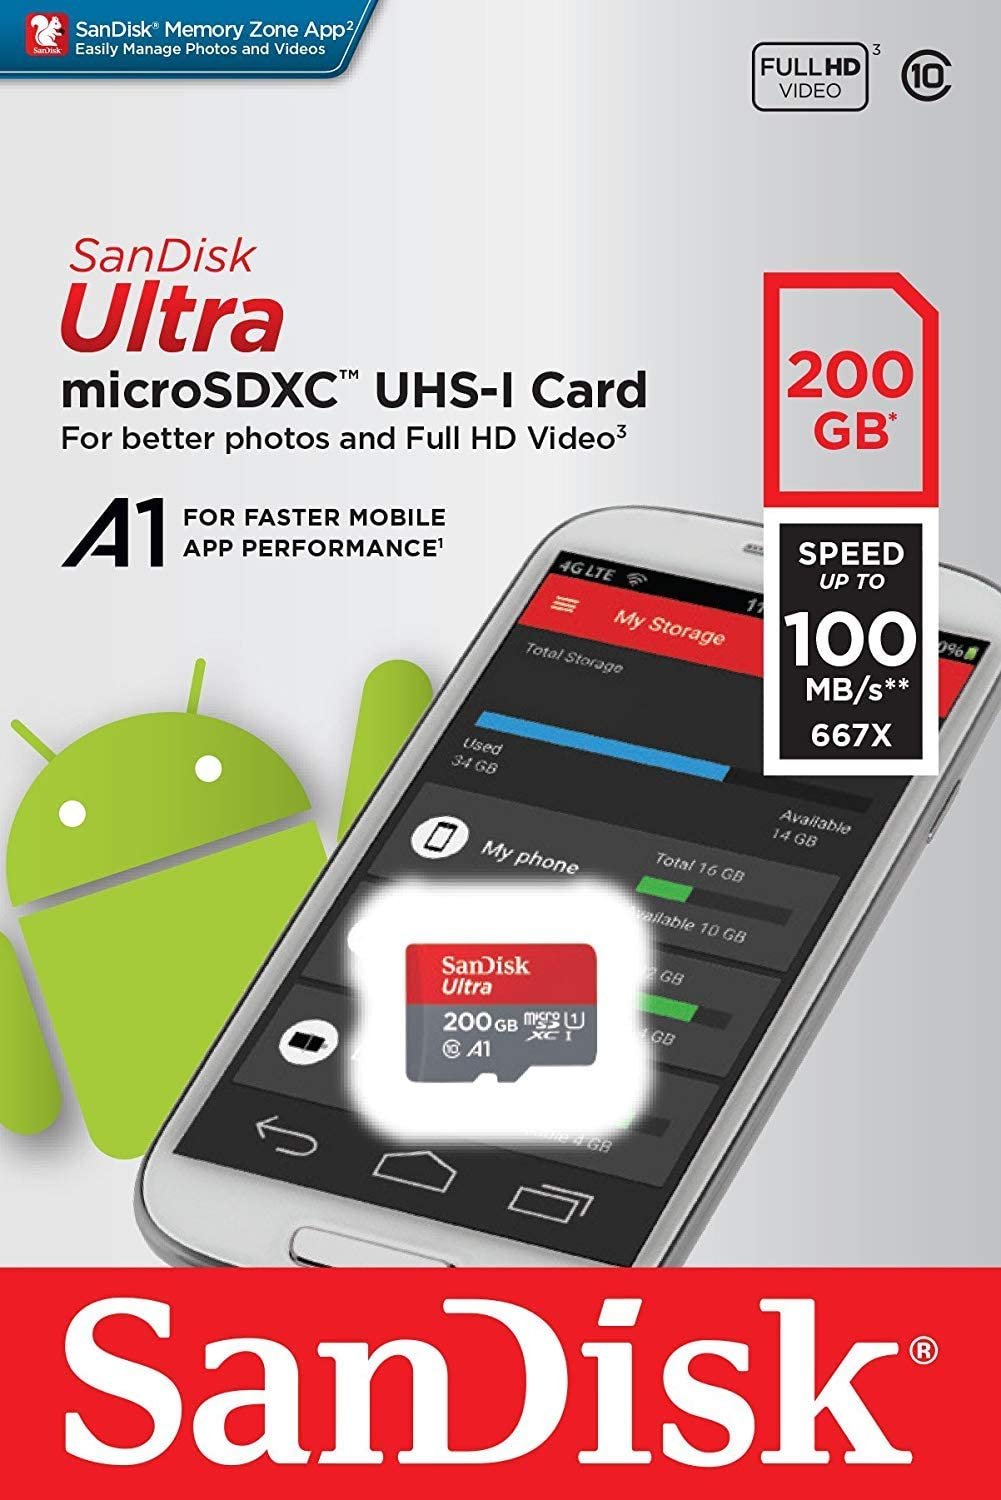 SanDisk Ultra 200GB MicroSDXC Verified for General Mobile Discovery Air by SanFlash 100MBs A1 U1 C10 Works with SanDisk